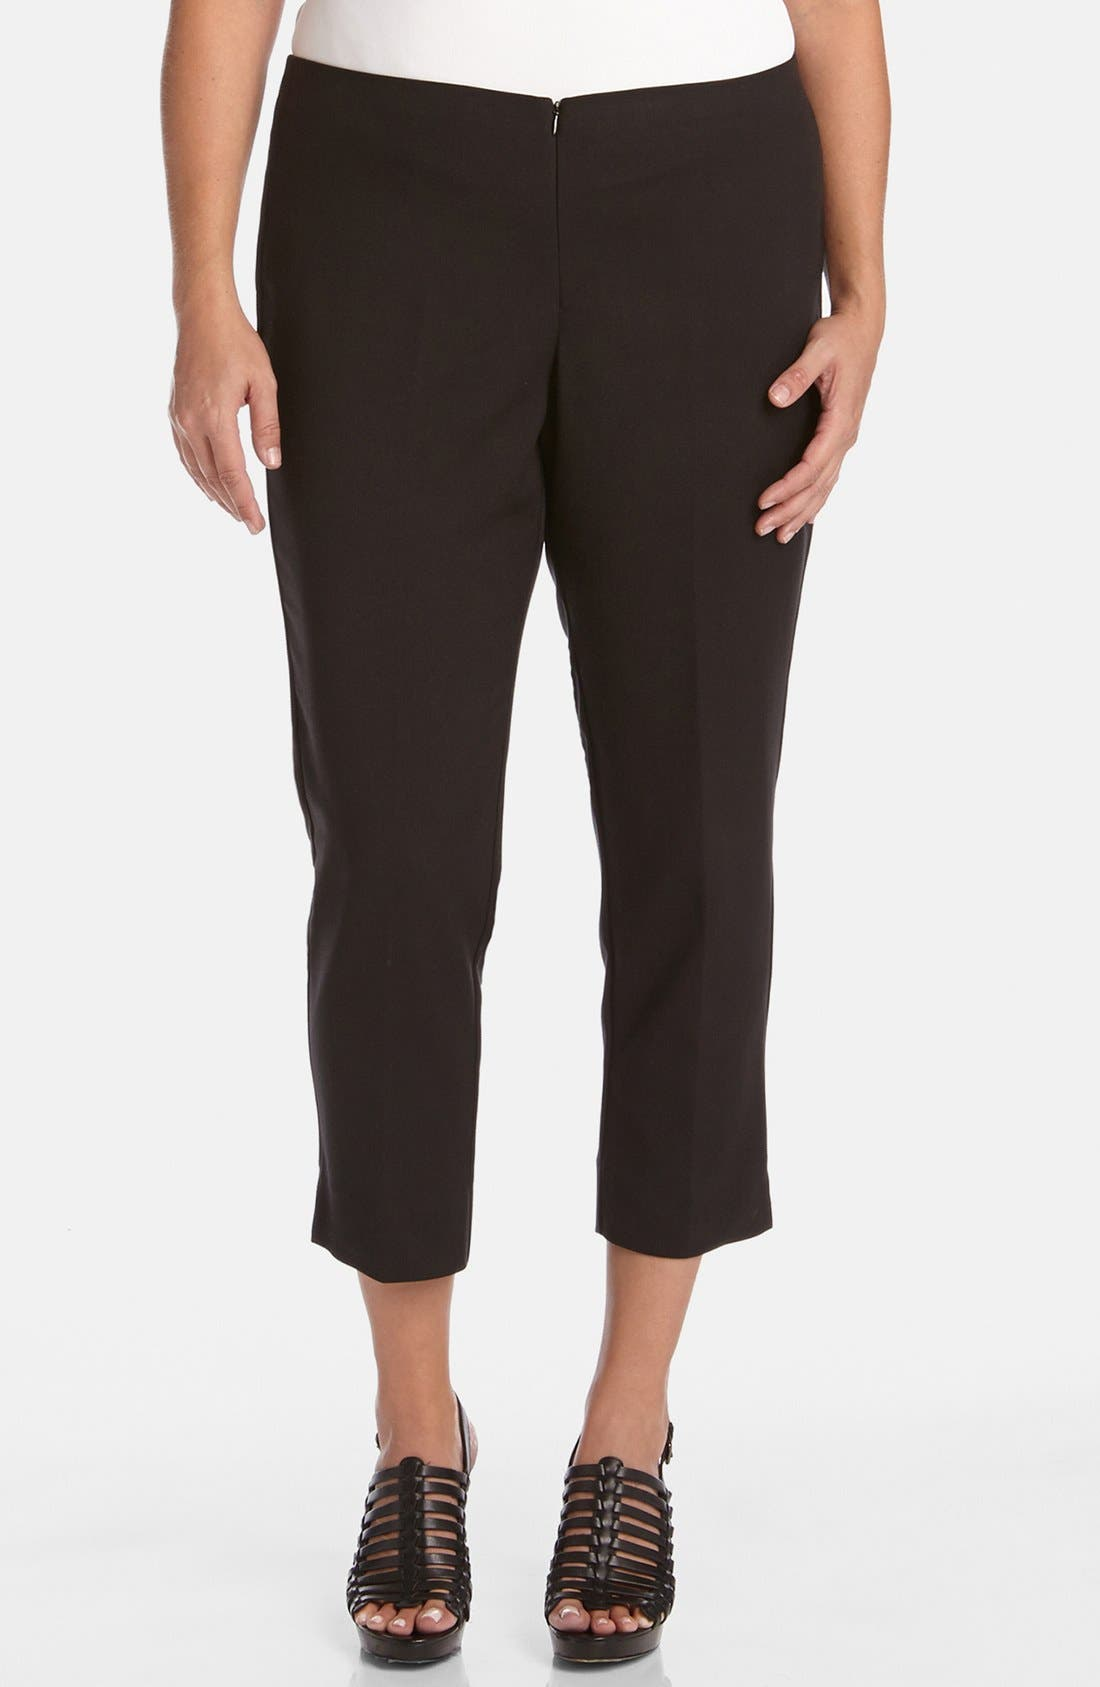 Karen Kane Stretch Capri Pants (Plus Size)